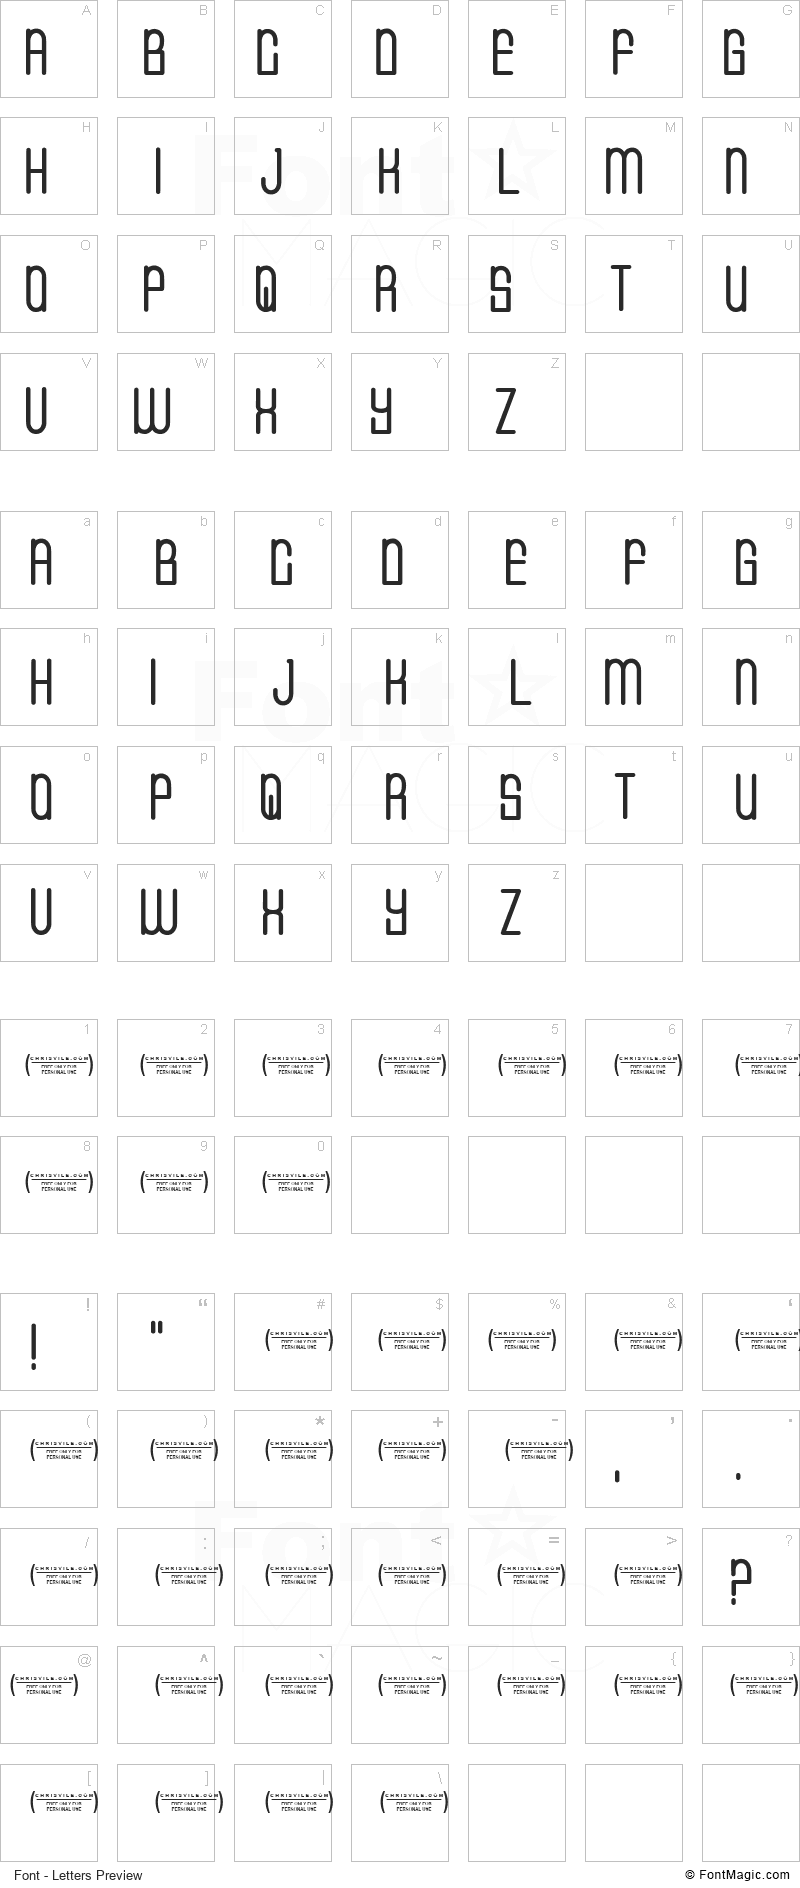 CVF Buffalo Grove Font - All Latters Preview Chart